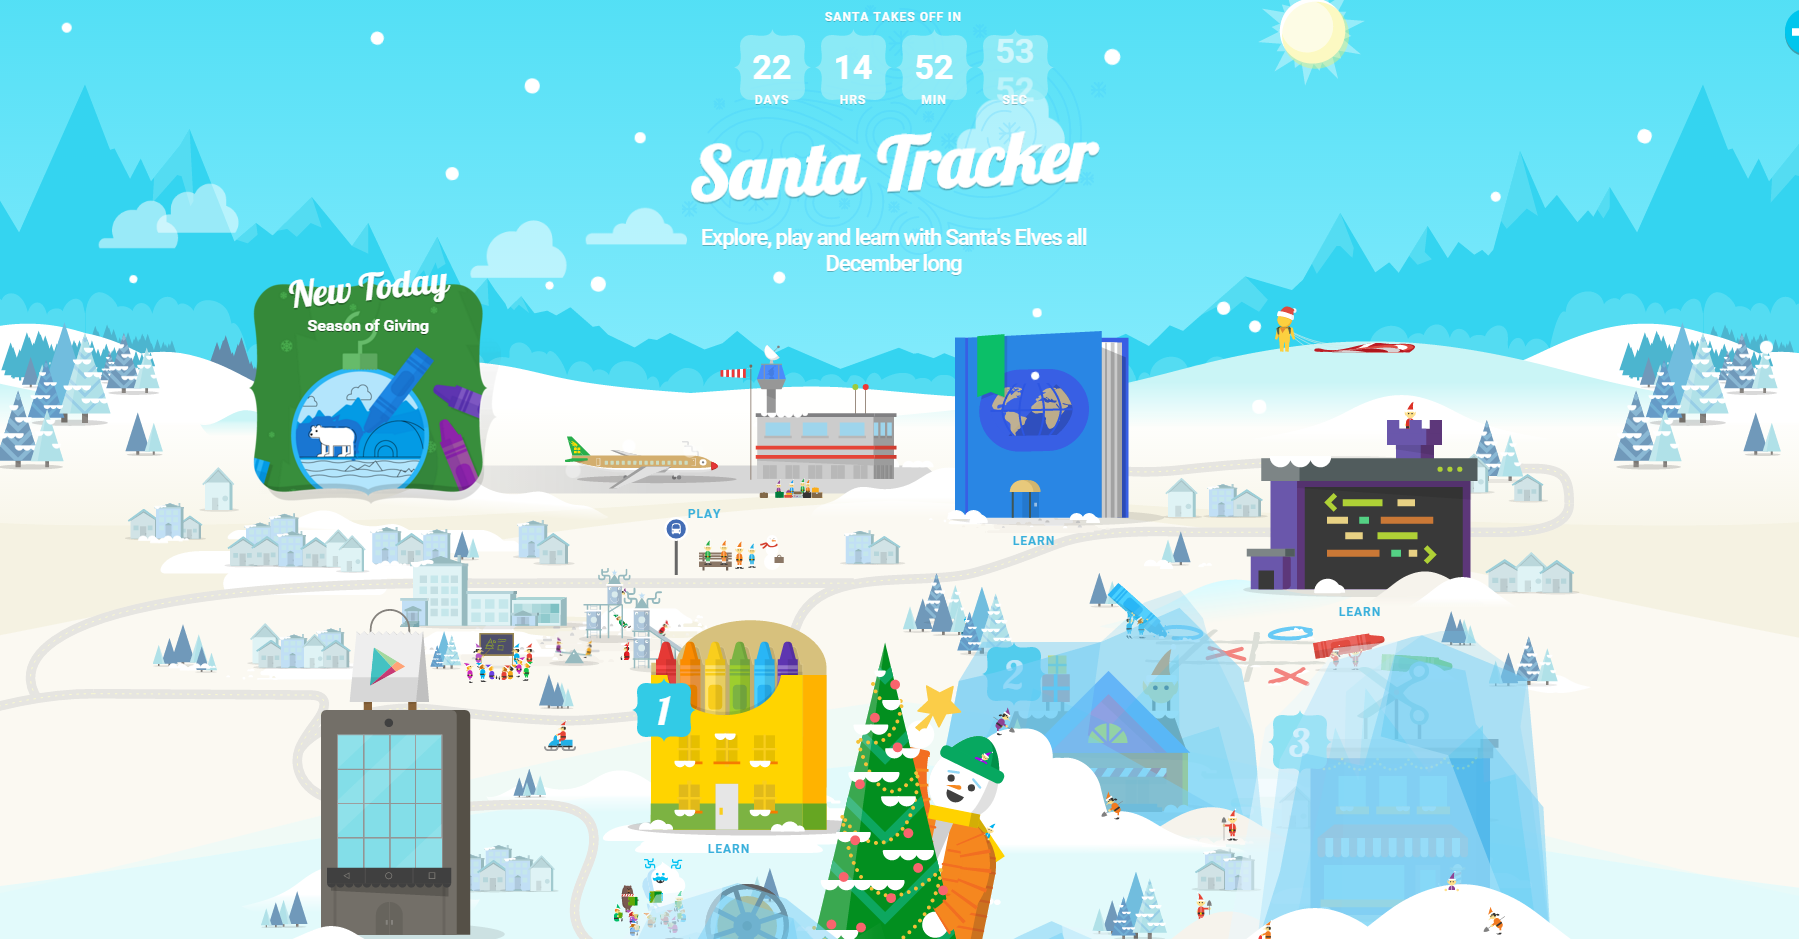 Google reboots the santa tracker for christmas 2015 with fun games and